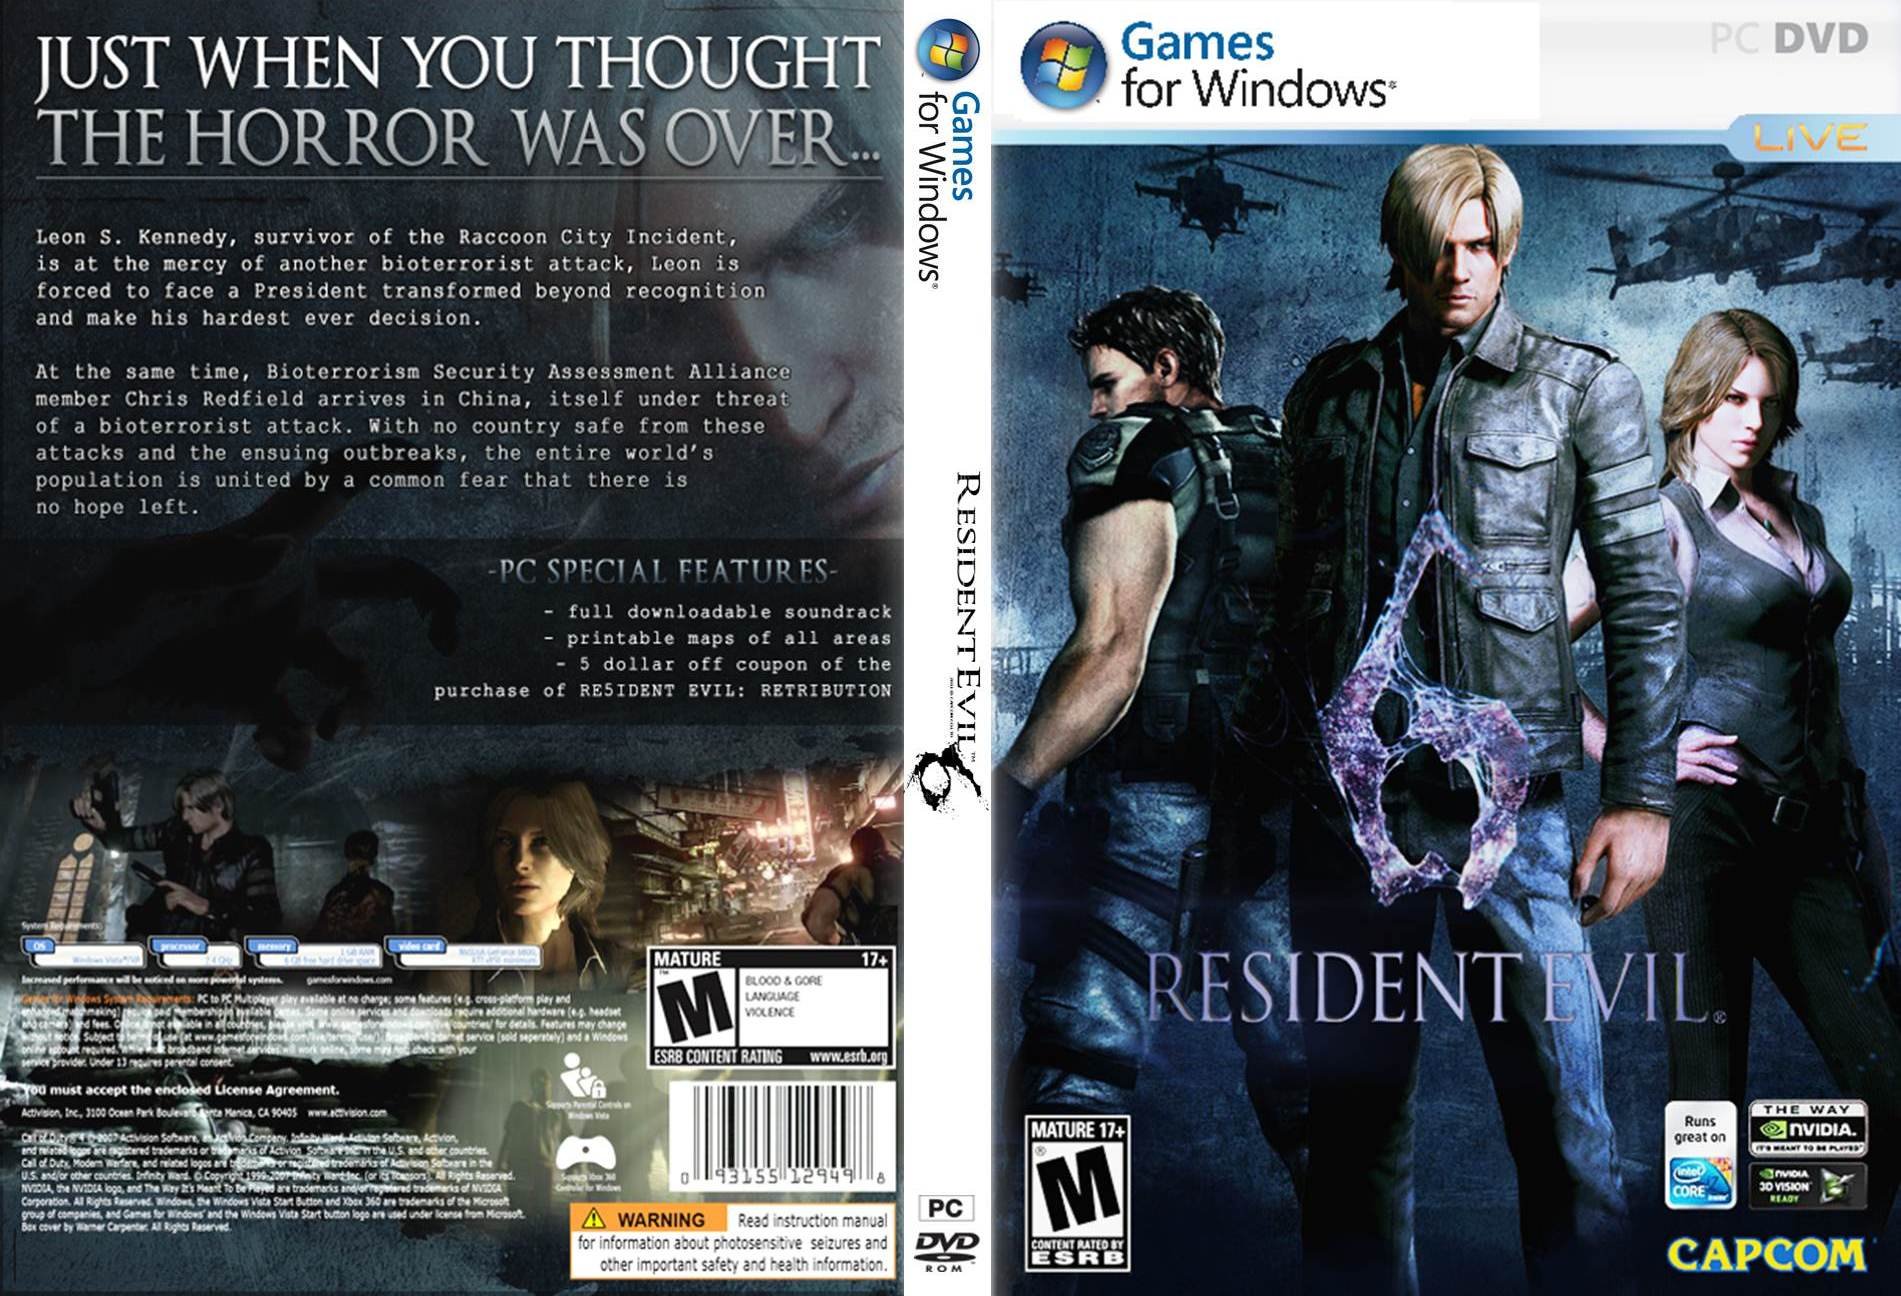 How to get resident evil 6 complete pack for free on pc 2017.